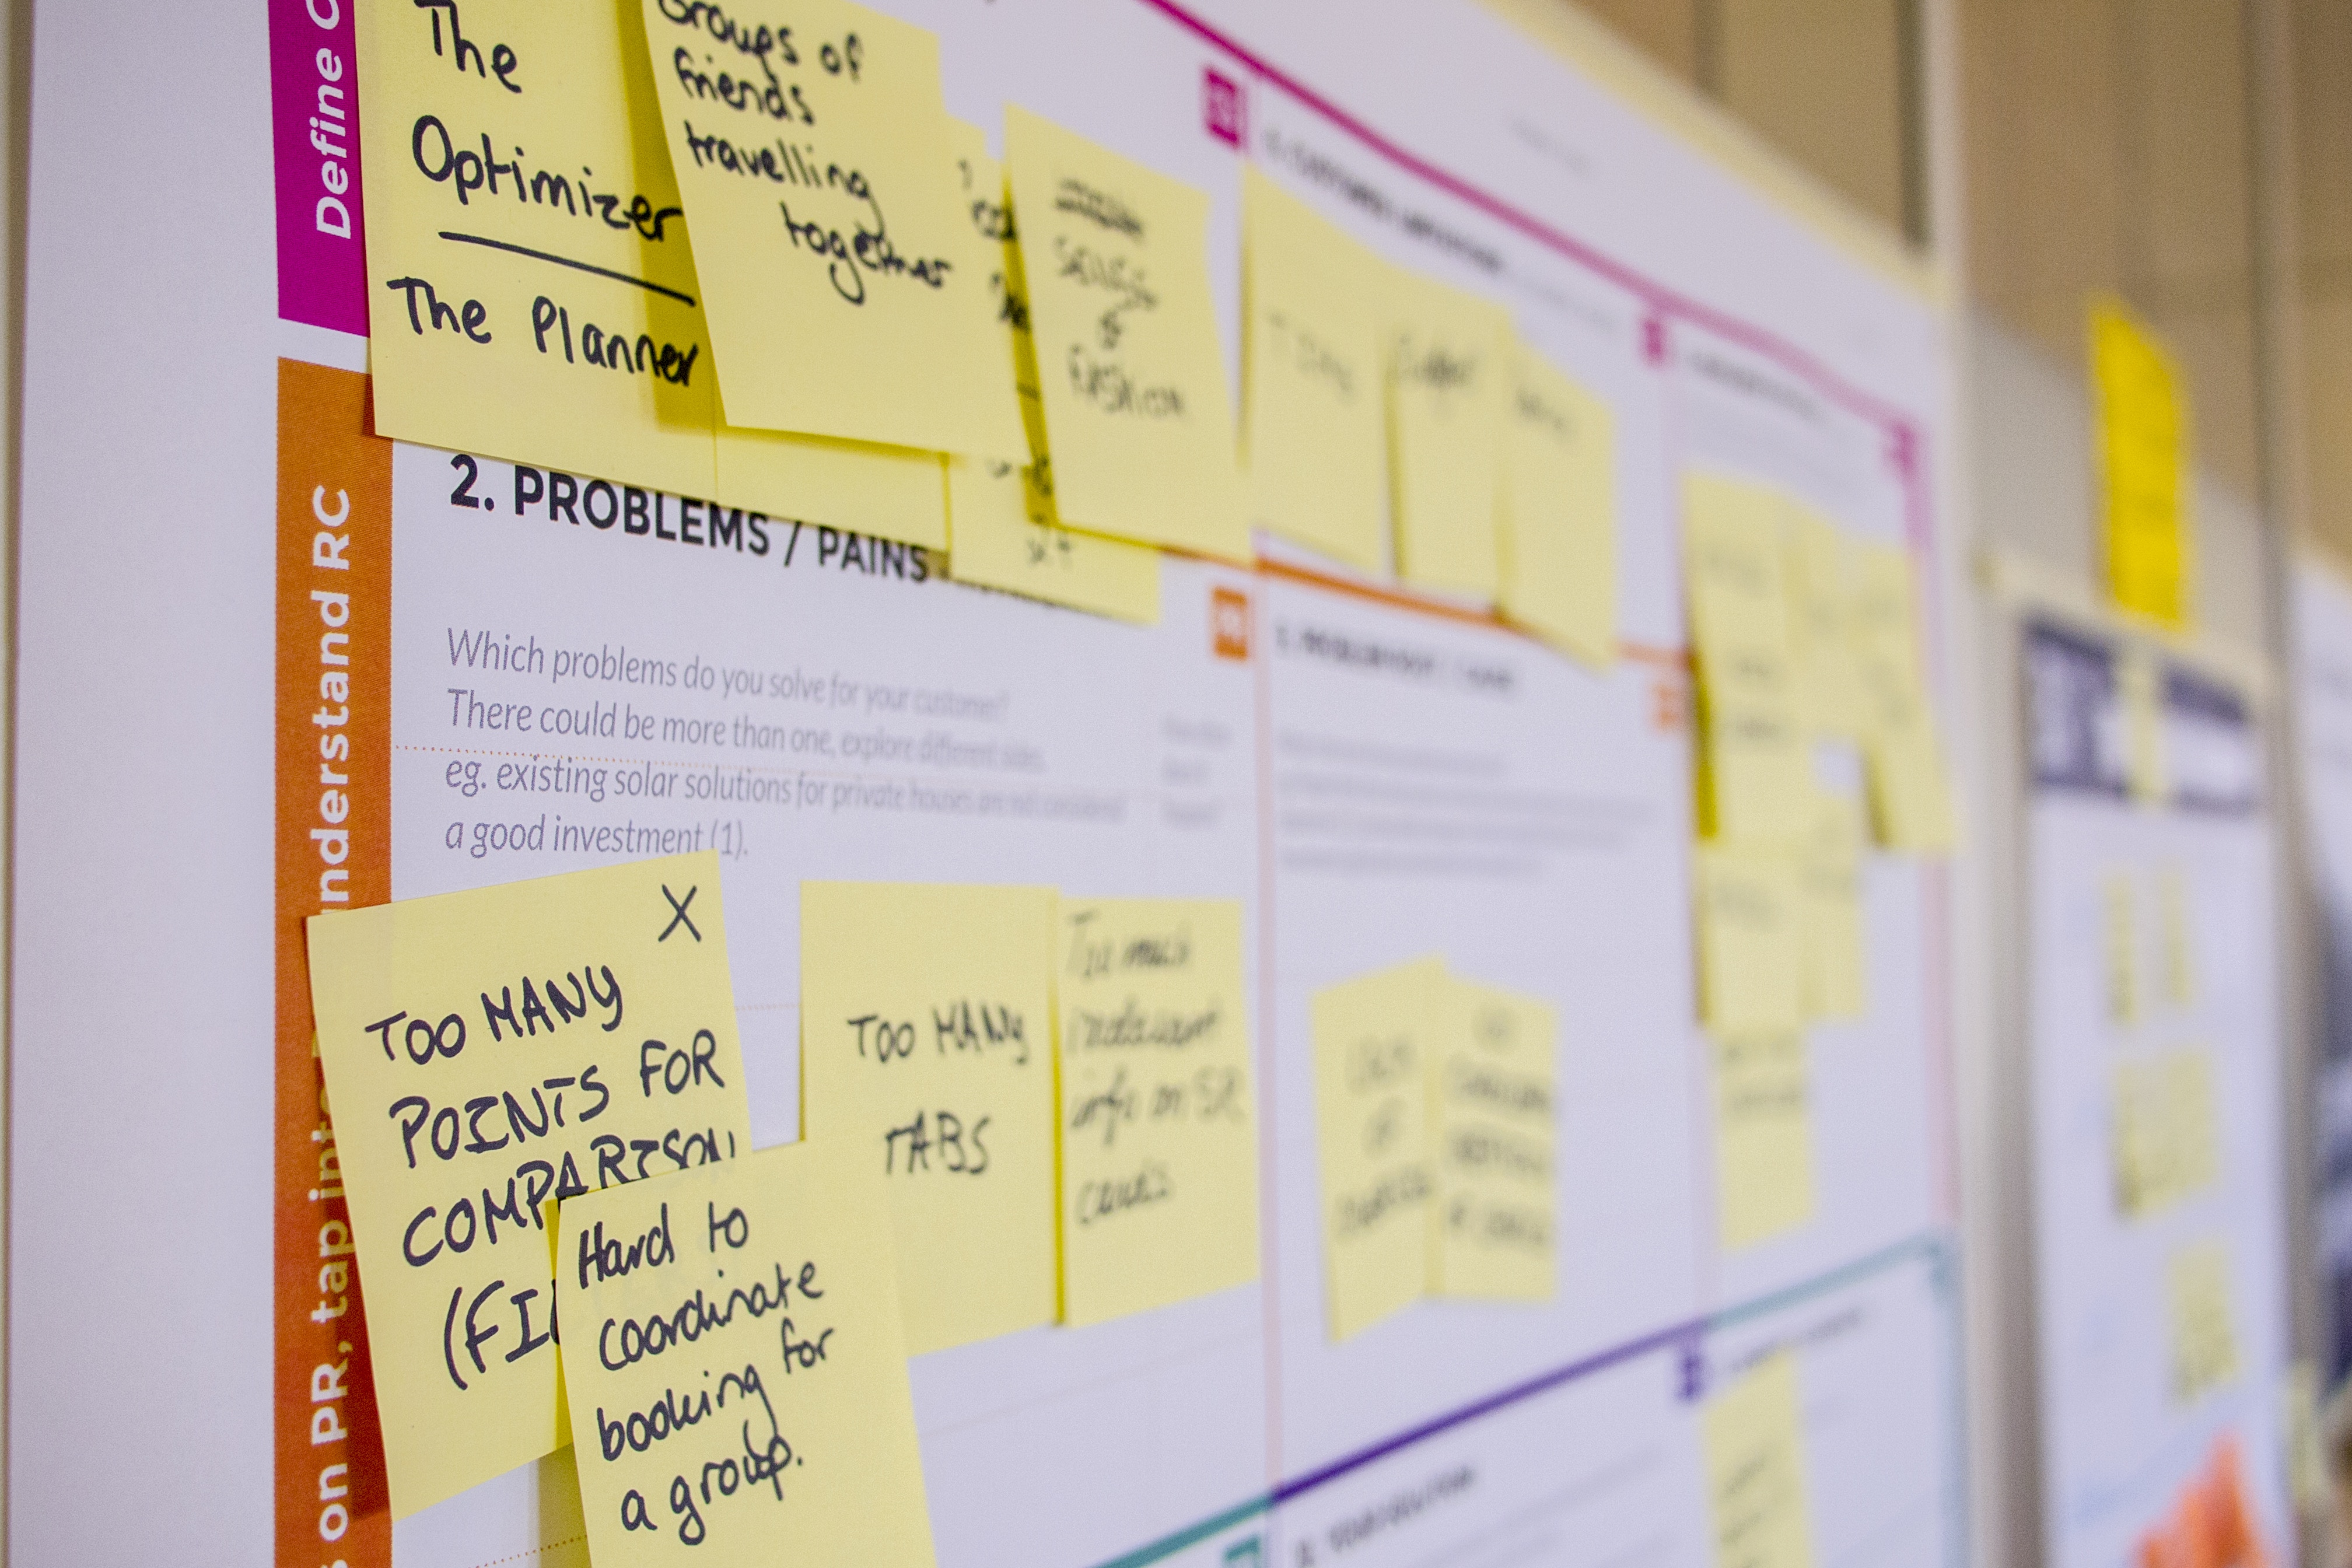 Photo of wall with project board and many post-it notes with writing on them